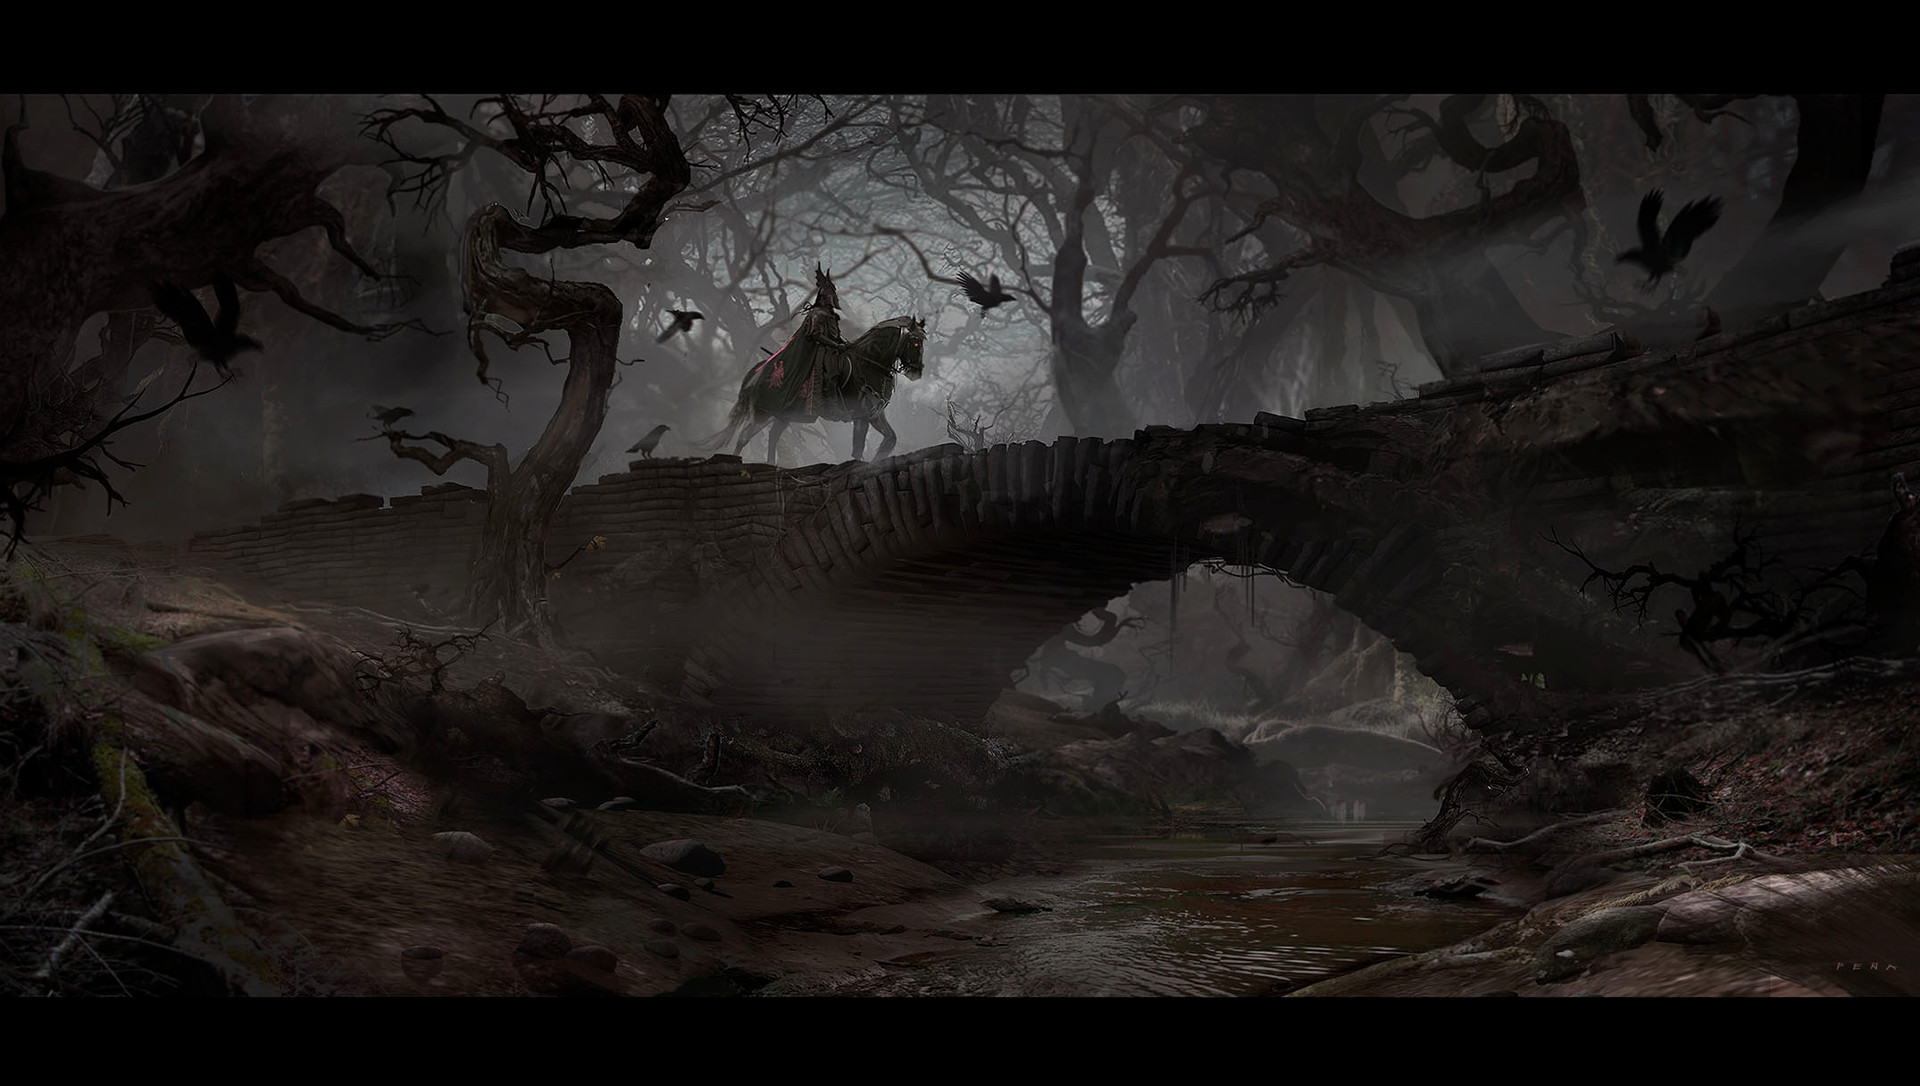 The Forgotten Rider: a personal art work from Eduardo's IP Wizard Anthologies.